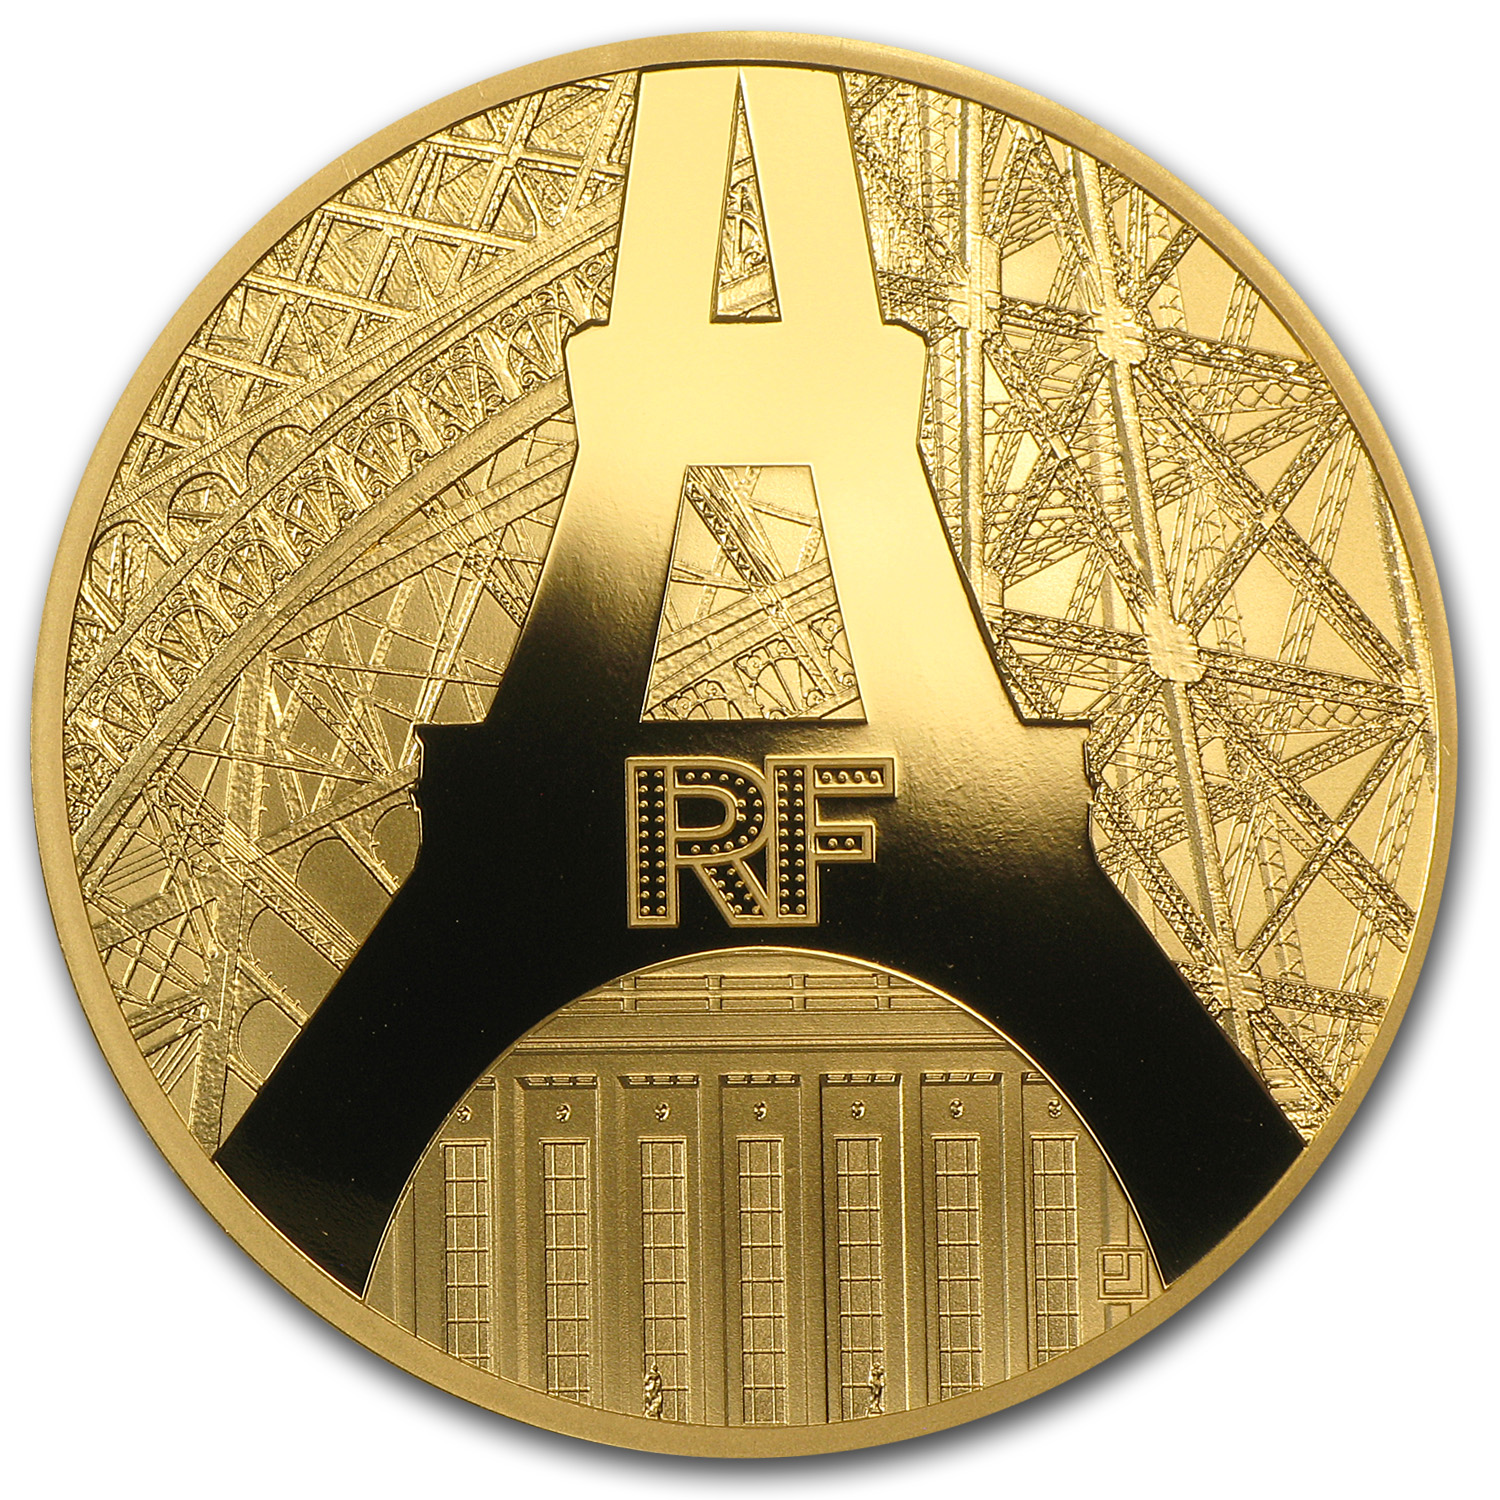 2014 €200 1 oz Gold Proof - Eiffel Tower & The Palais de Chaillot